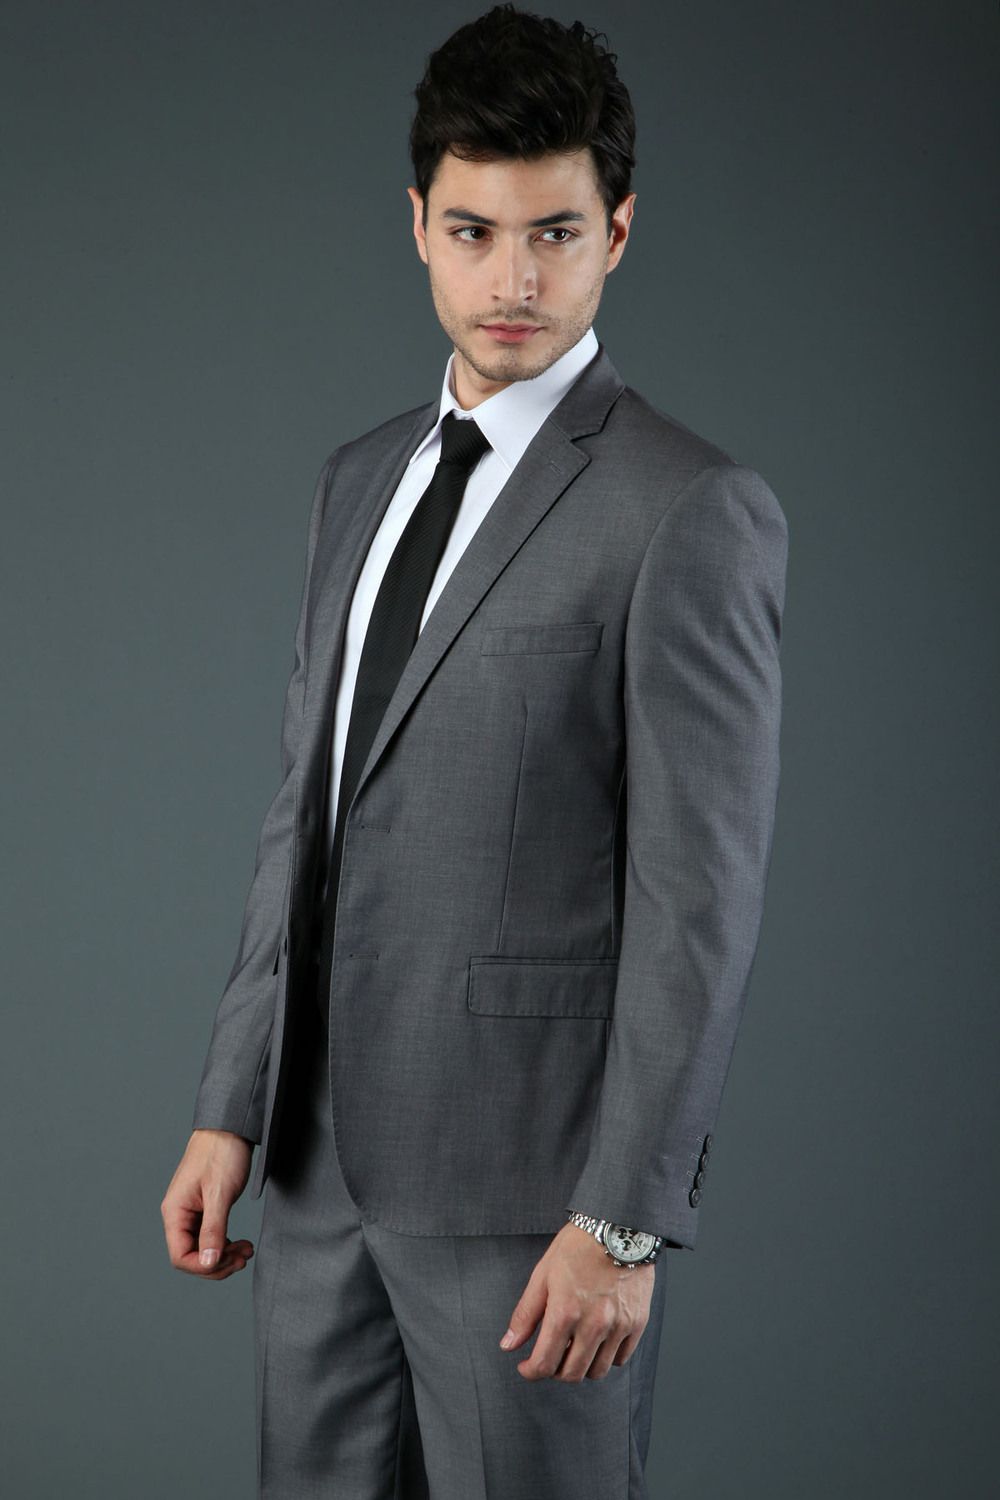 Special-young-grey-suit-slim-Mens-Suit-suit-male-work-interview-business -coat-suit.jpg